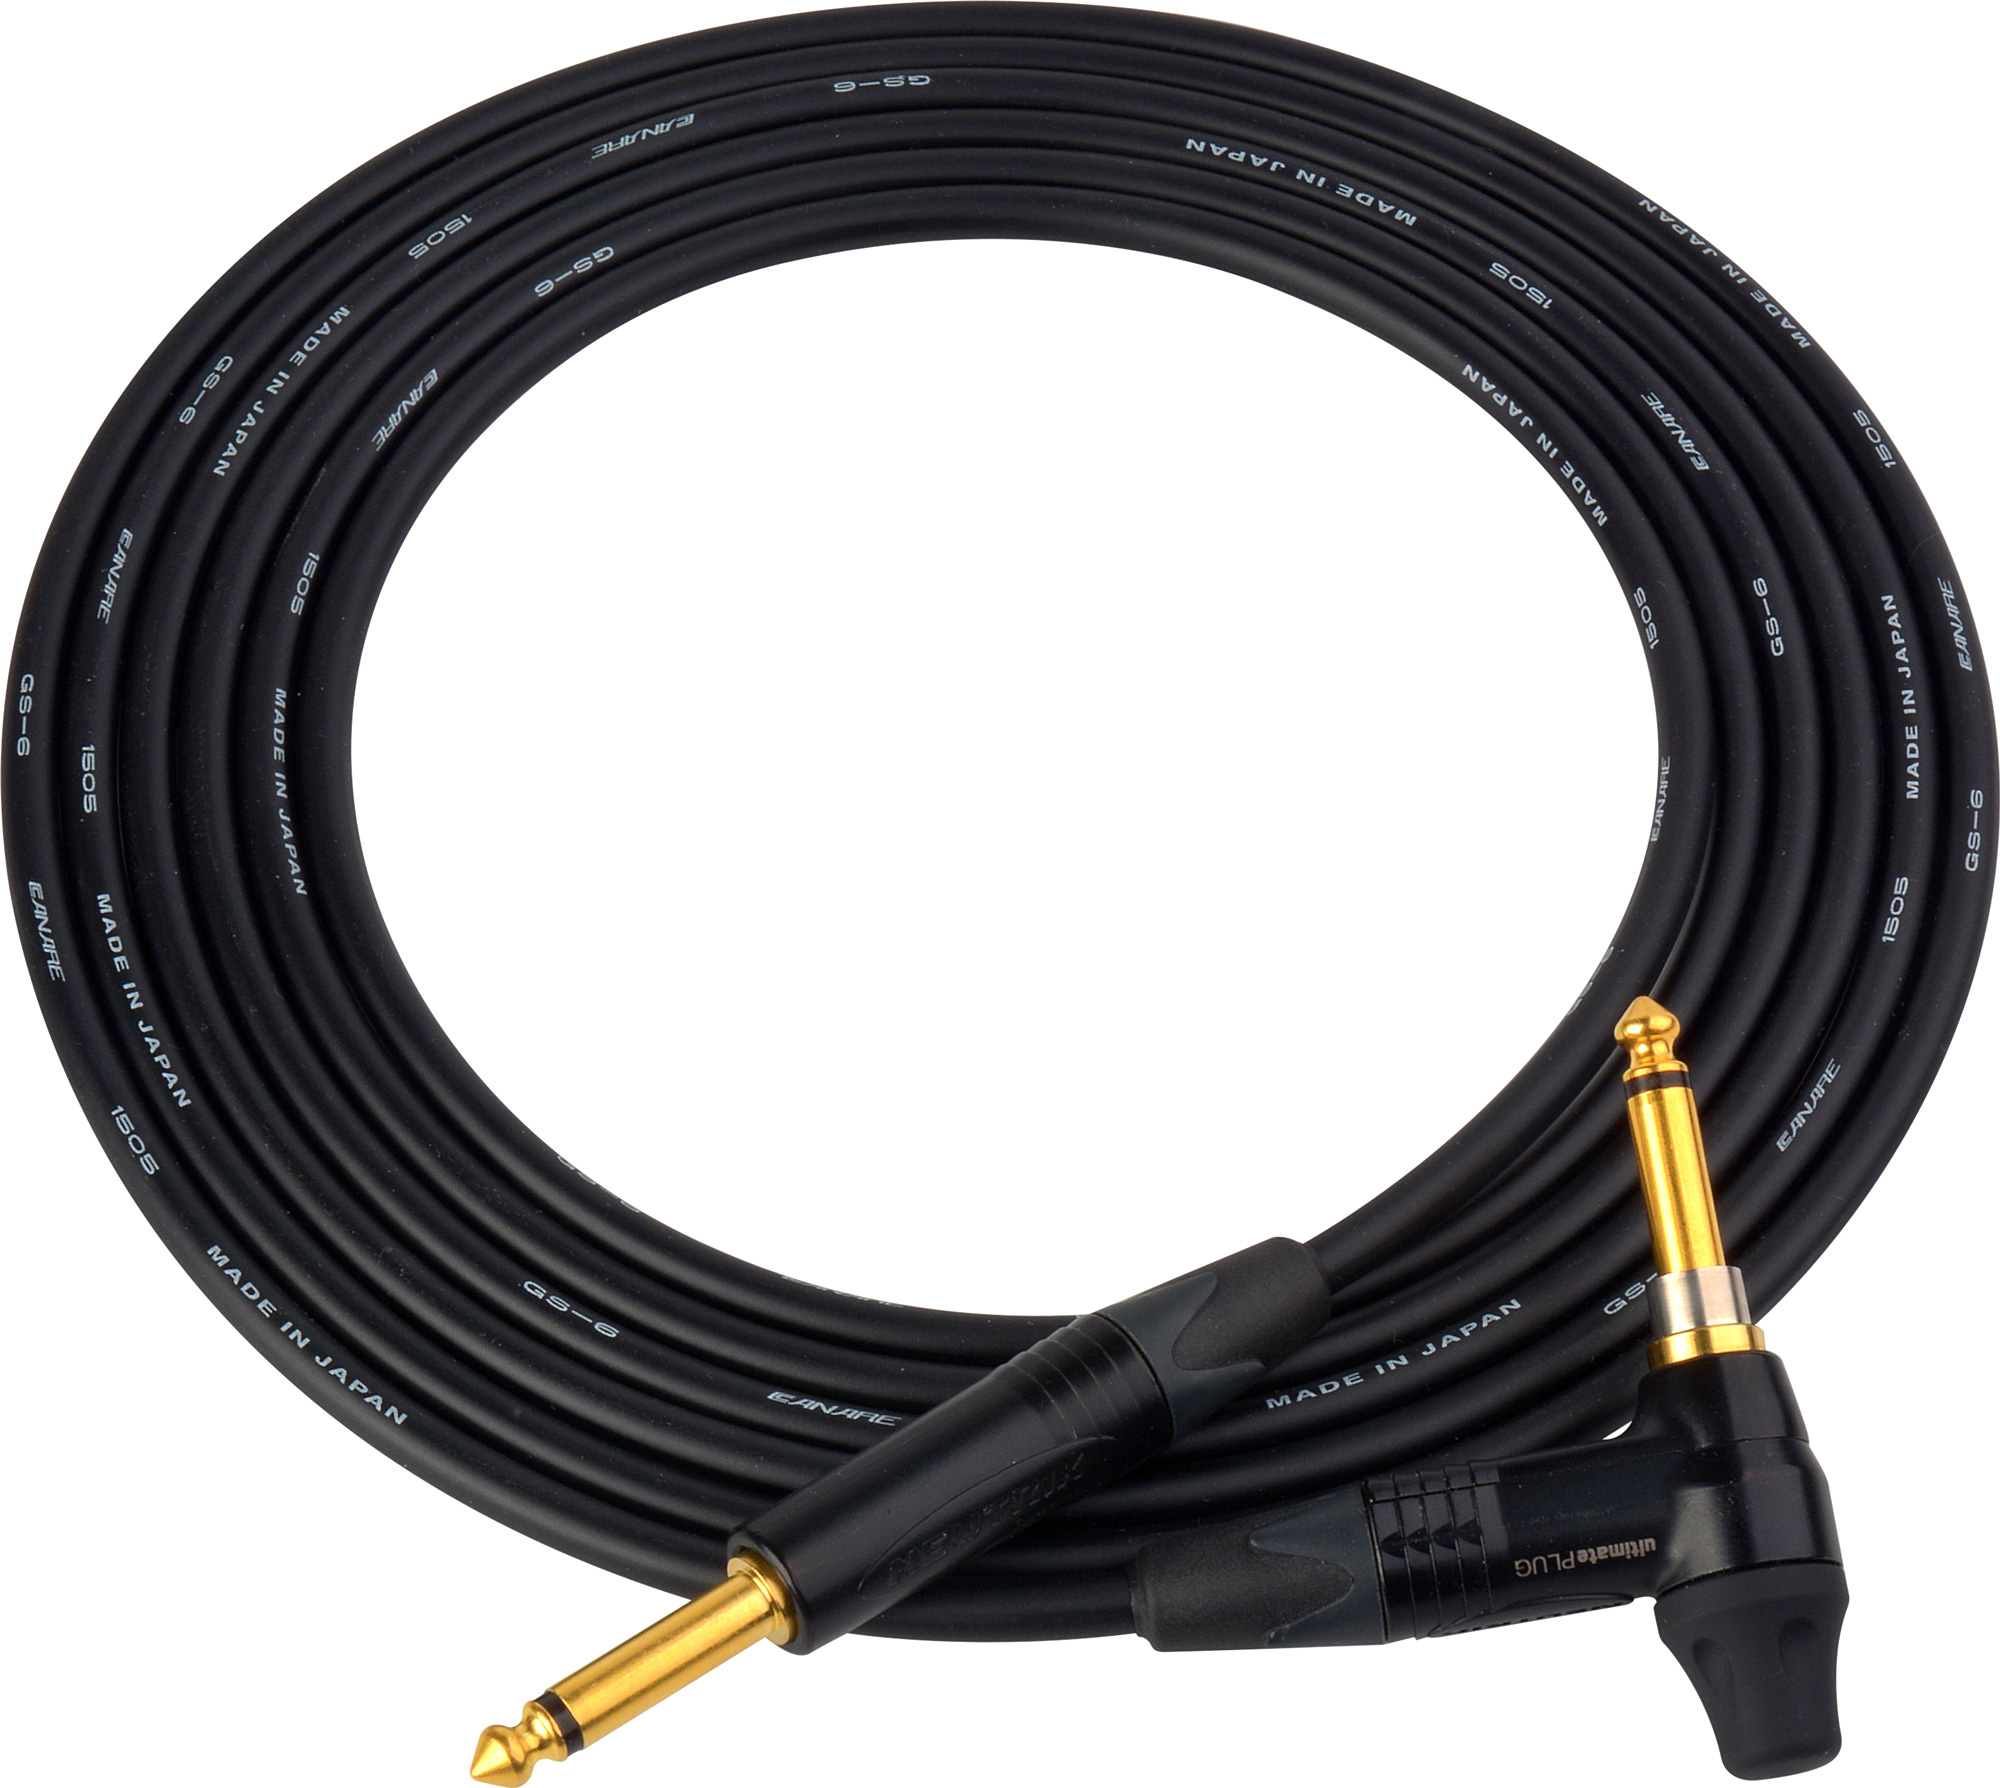 sescom ses guitone 020 guitar cable assembly with neutrik ultimateplug np2rx ultimate and canare. Black Bedroom Furniture Sets. Home Design Ideas